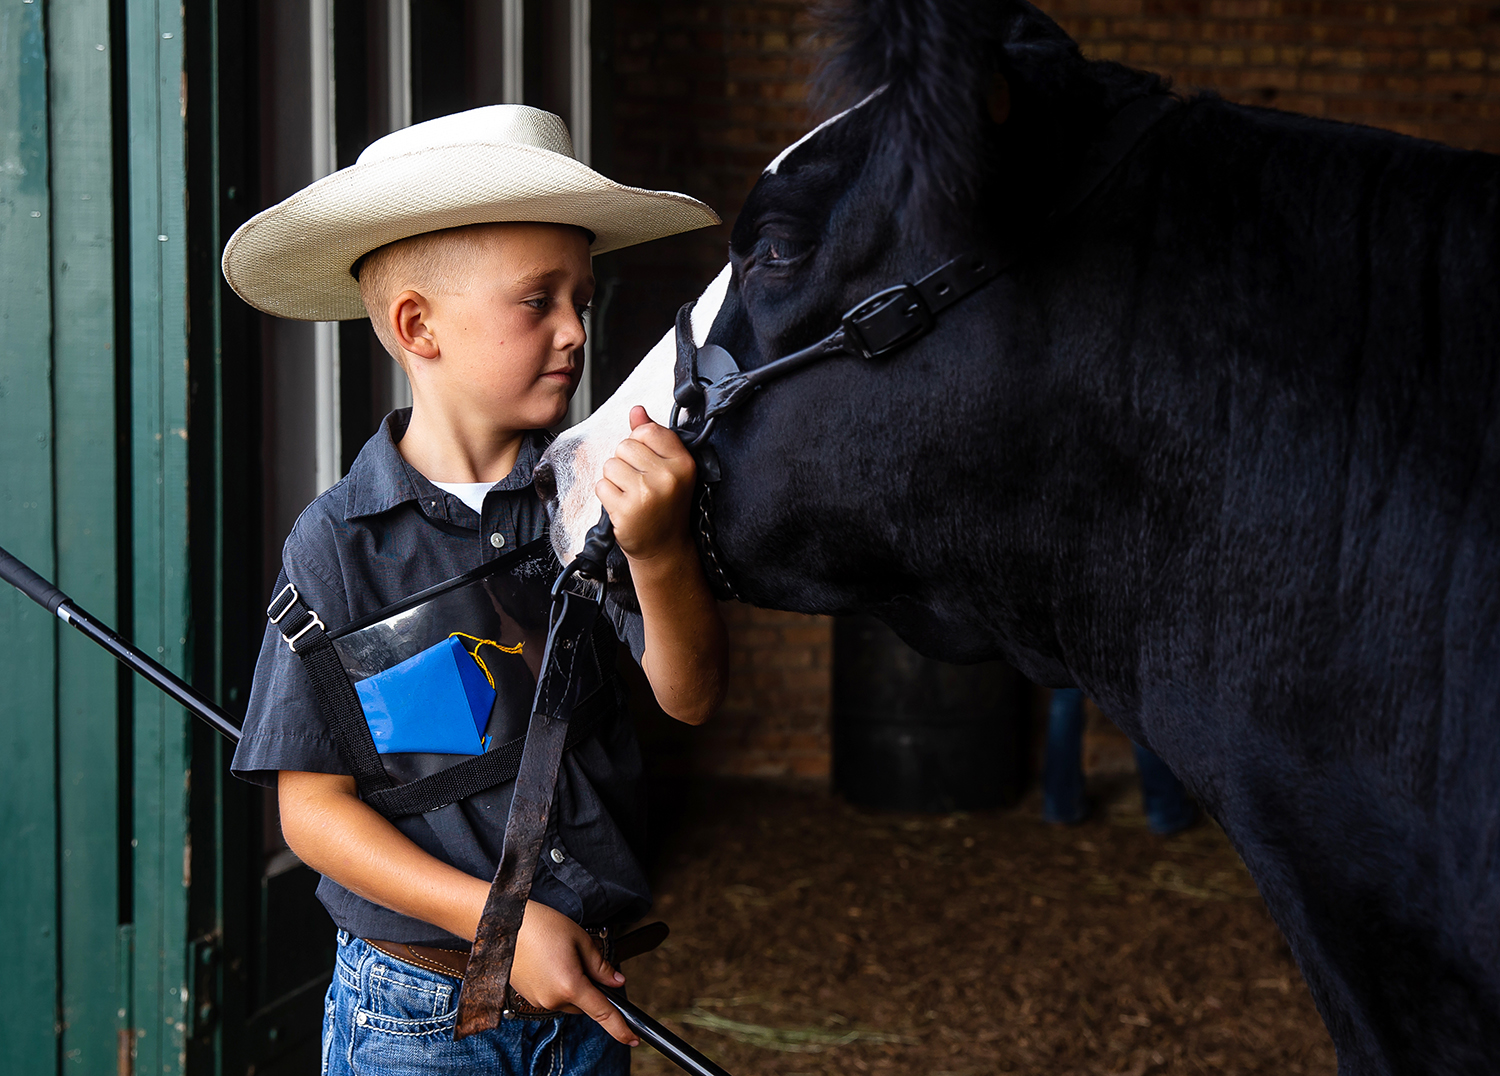 """Kolten Greenhorn, 8, of Waynesville, Ohio, tends to his Low Percentage Simmental Female named """"Princess"""" prior to judging in the Livestock Center during the Illinois State Fair at the Illinois State Fairgrounds, Friday, Aug. 10, 2018, in Springfield, Ill. Greenhord and """"Princess"""" won the Low Percentage Simmental Female Grand Champion award in the beef cattle category during the Open Livestock show at the Livestock Center. [Justin L. Fowler/The State Journal-Register]"""